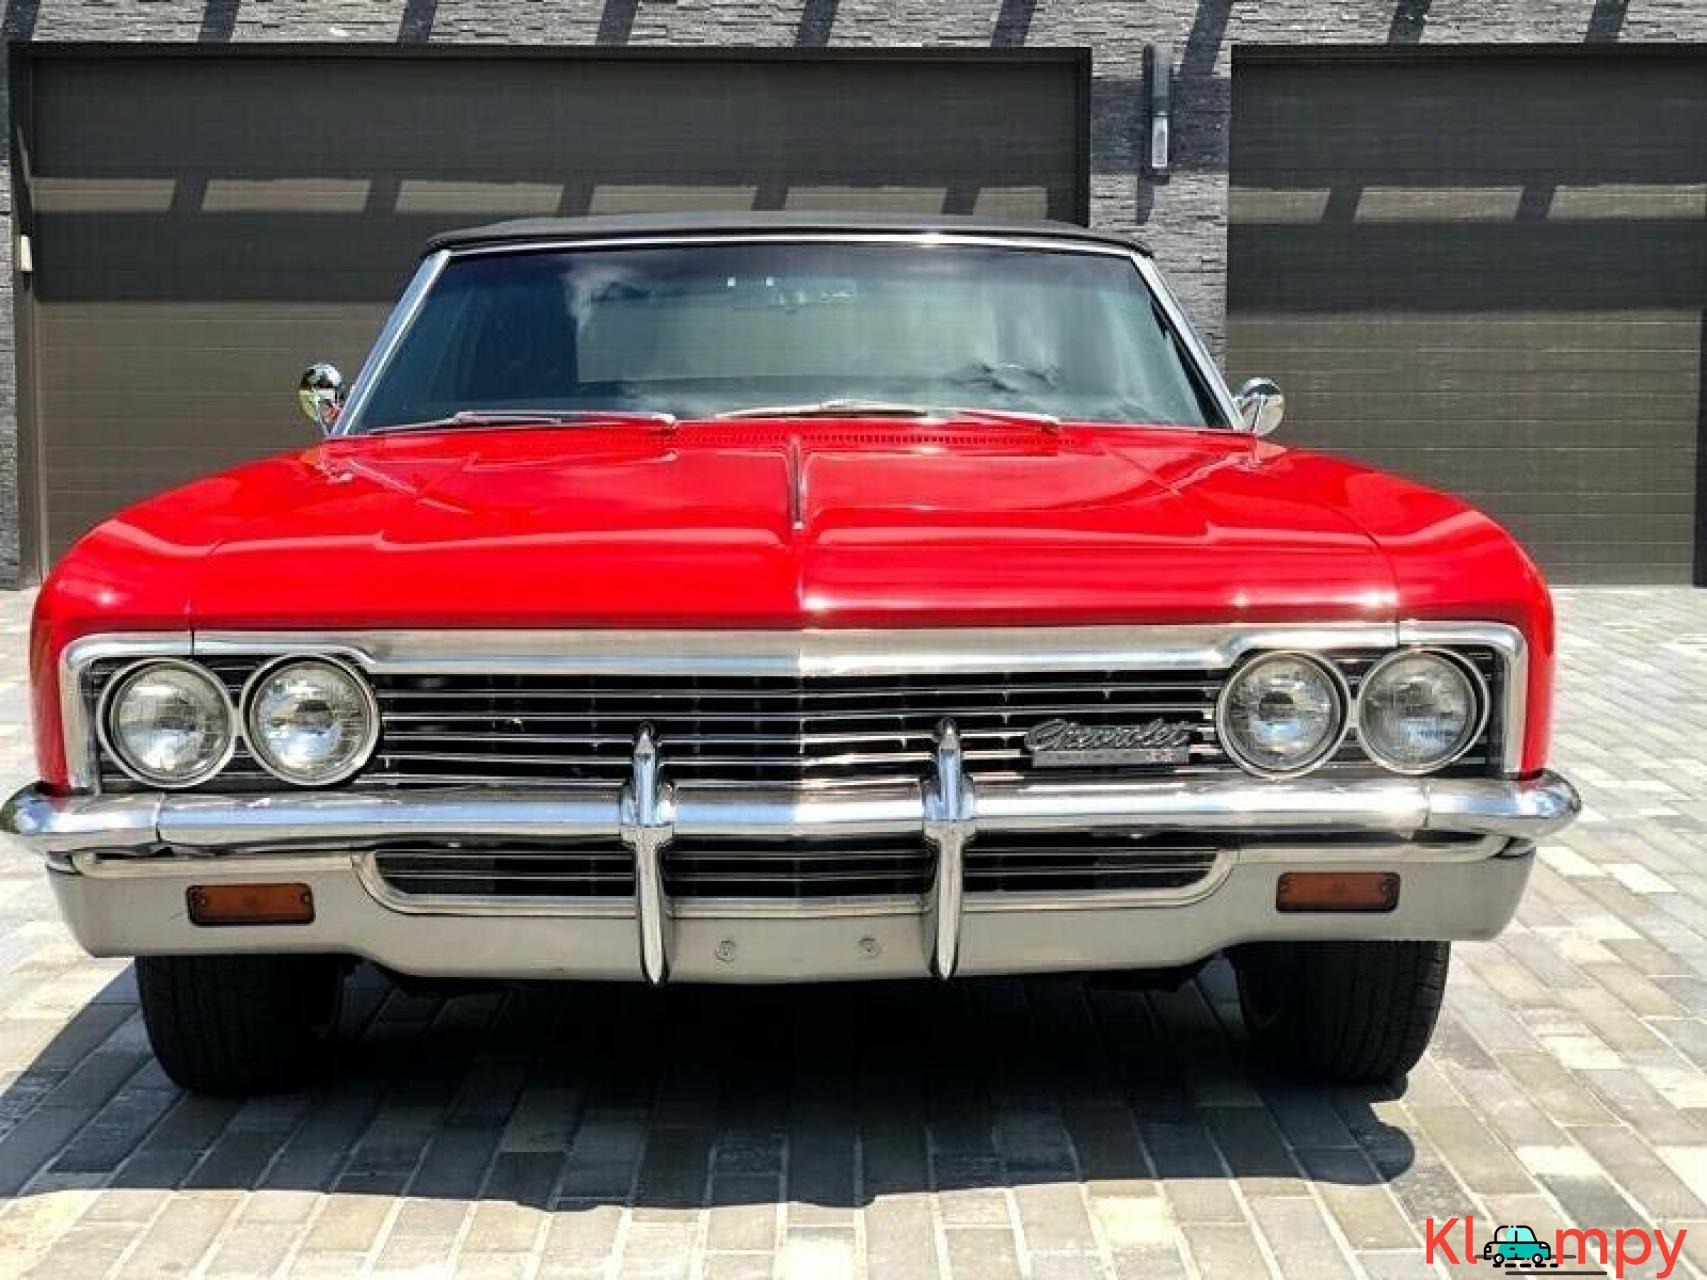 1966 Chevrolet Impala MATCHING NUMBERS PWR - 2/20